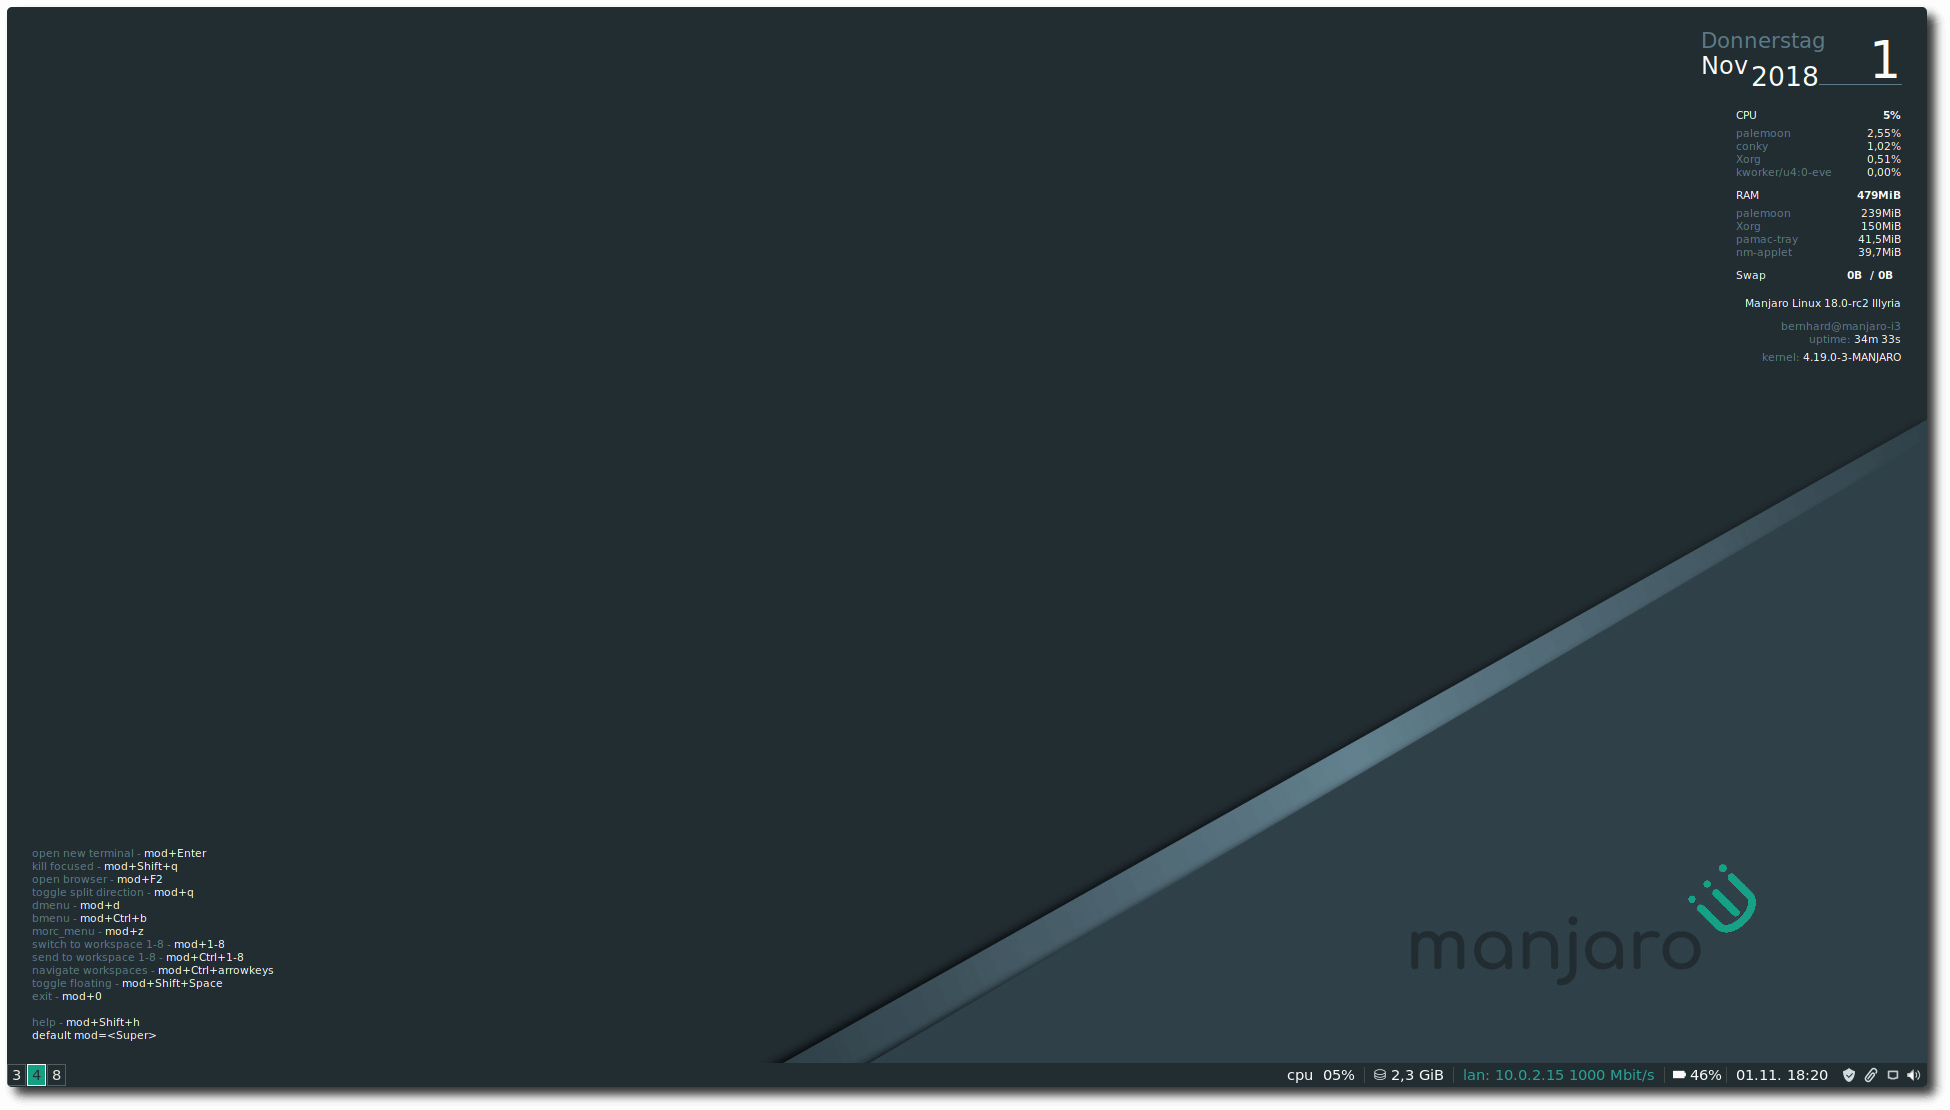 Manjaro 18 0 Released - What's New in Manjaro Illyria?